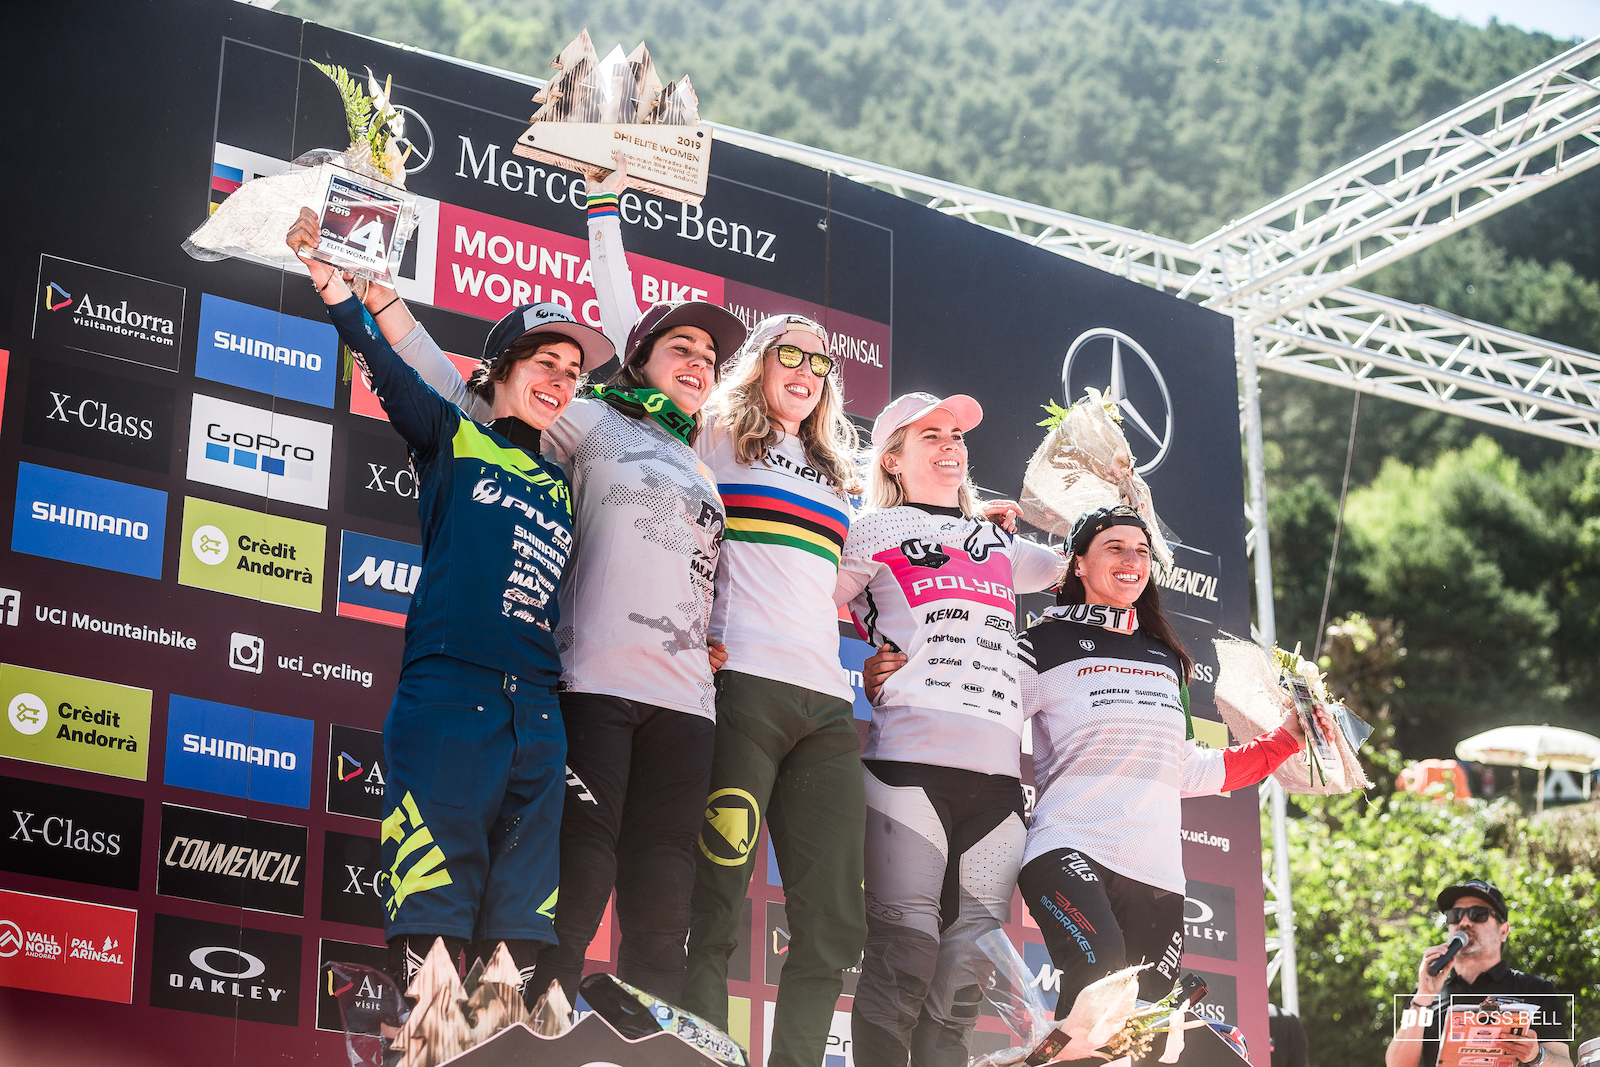 Your elite womens podium in Andorra 1st Rachel Atherton 2nd Marine Cabirou 3rd Tracey Hannah 4th Emilie Siegenthaler 5th Eleonora Farina